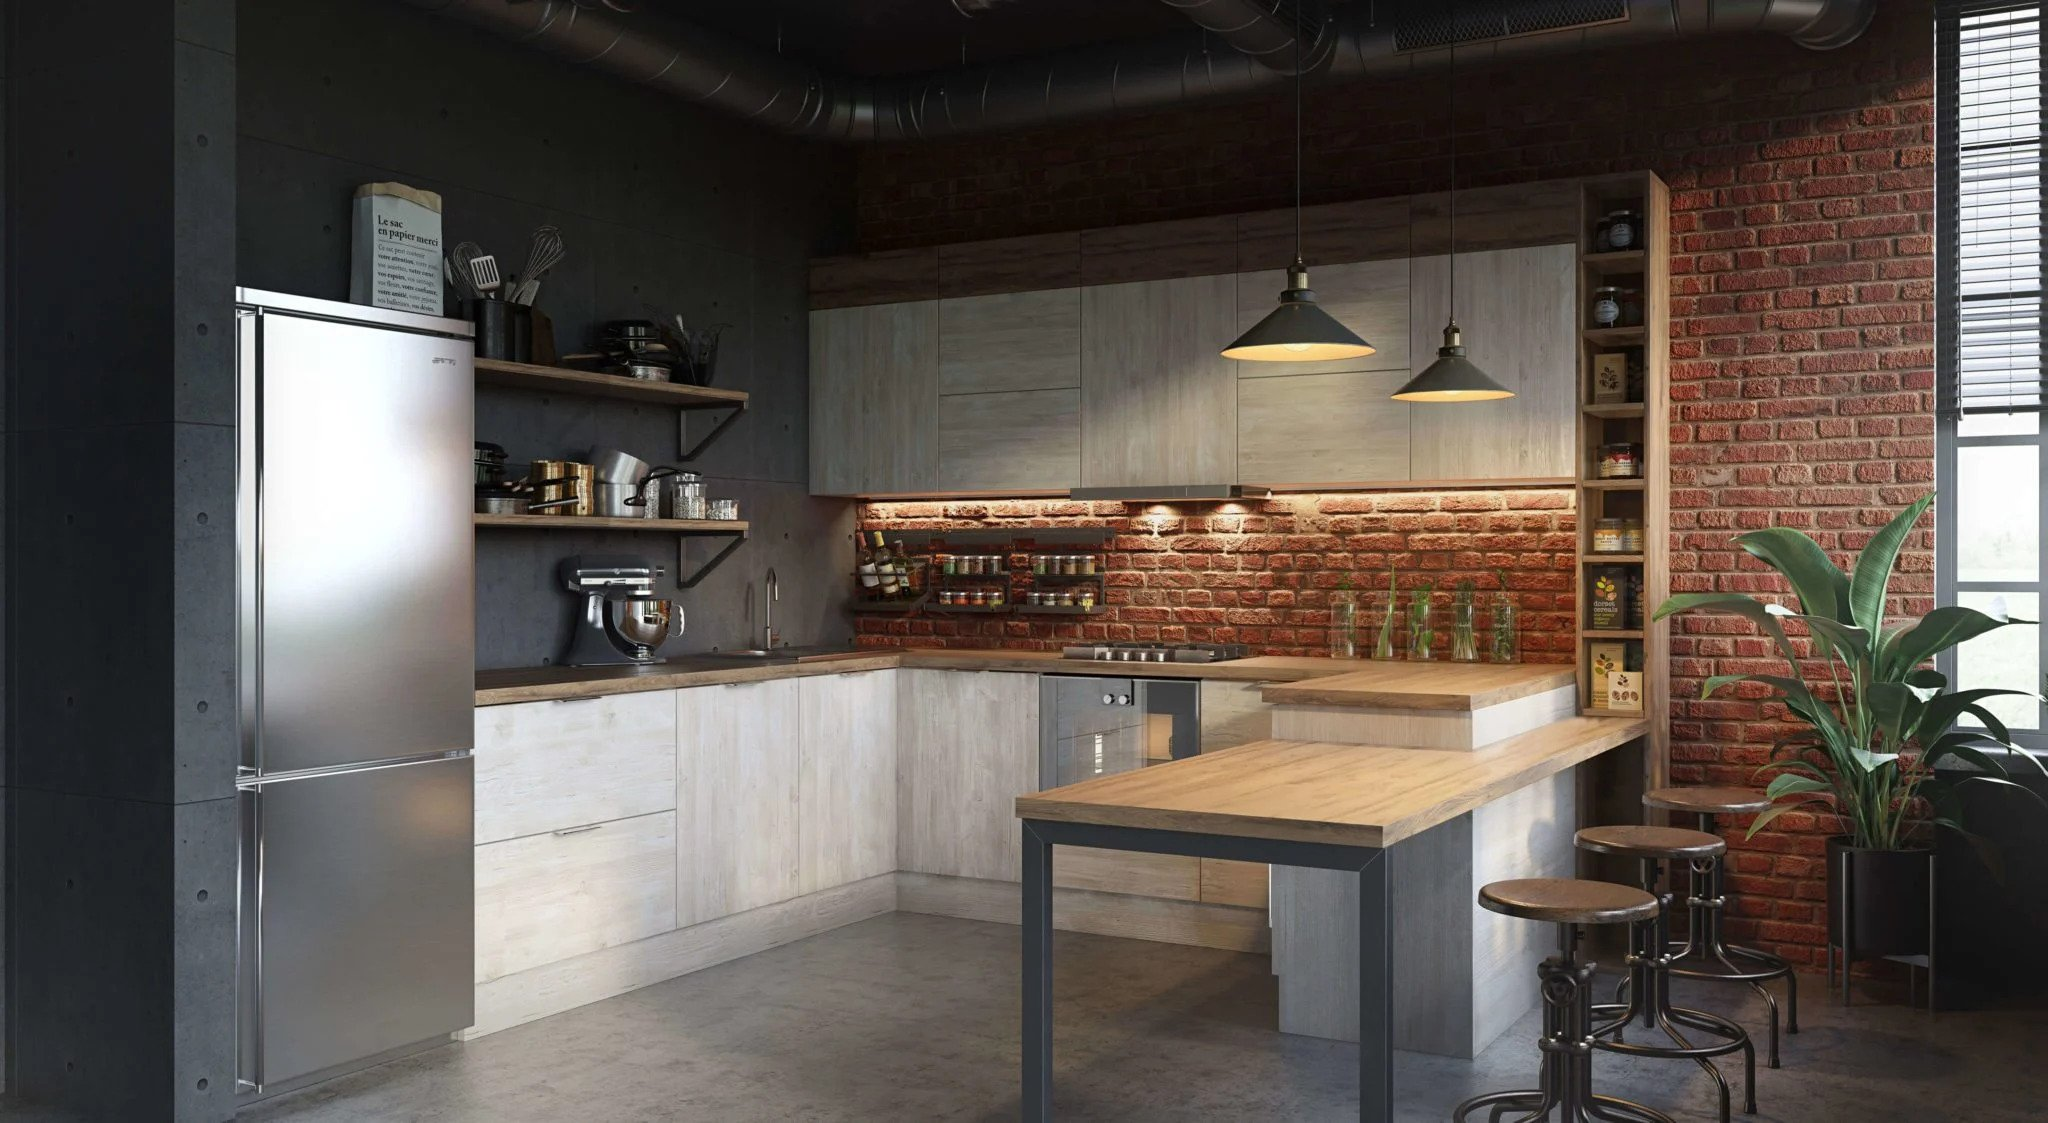 3D Visualization of a Kitchen in industrial Style